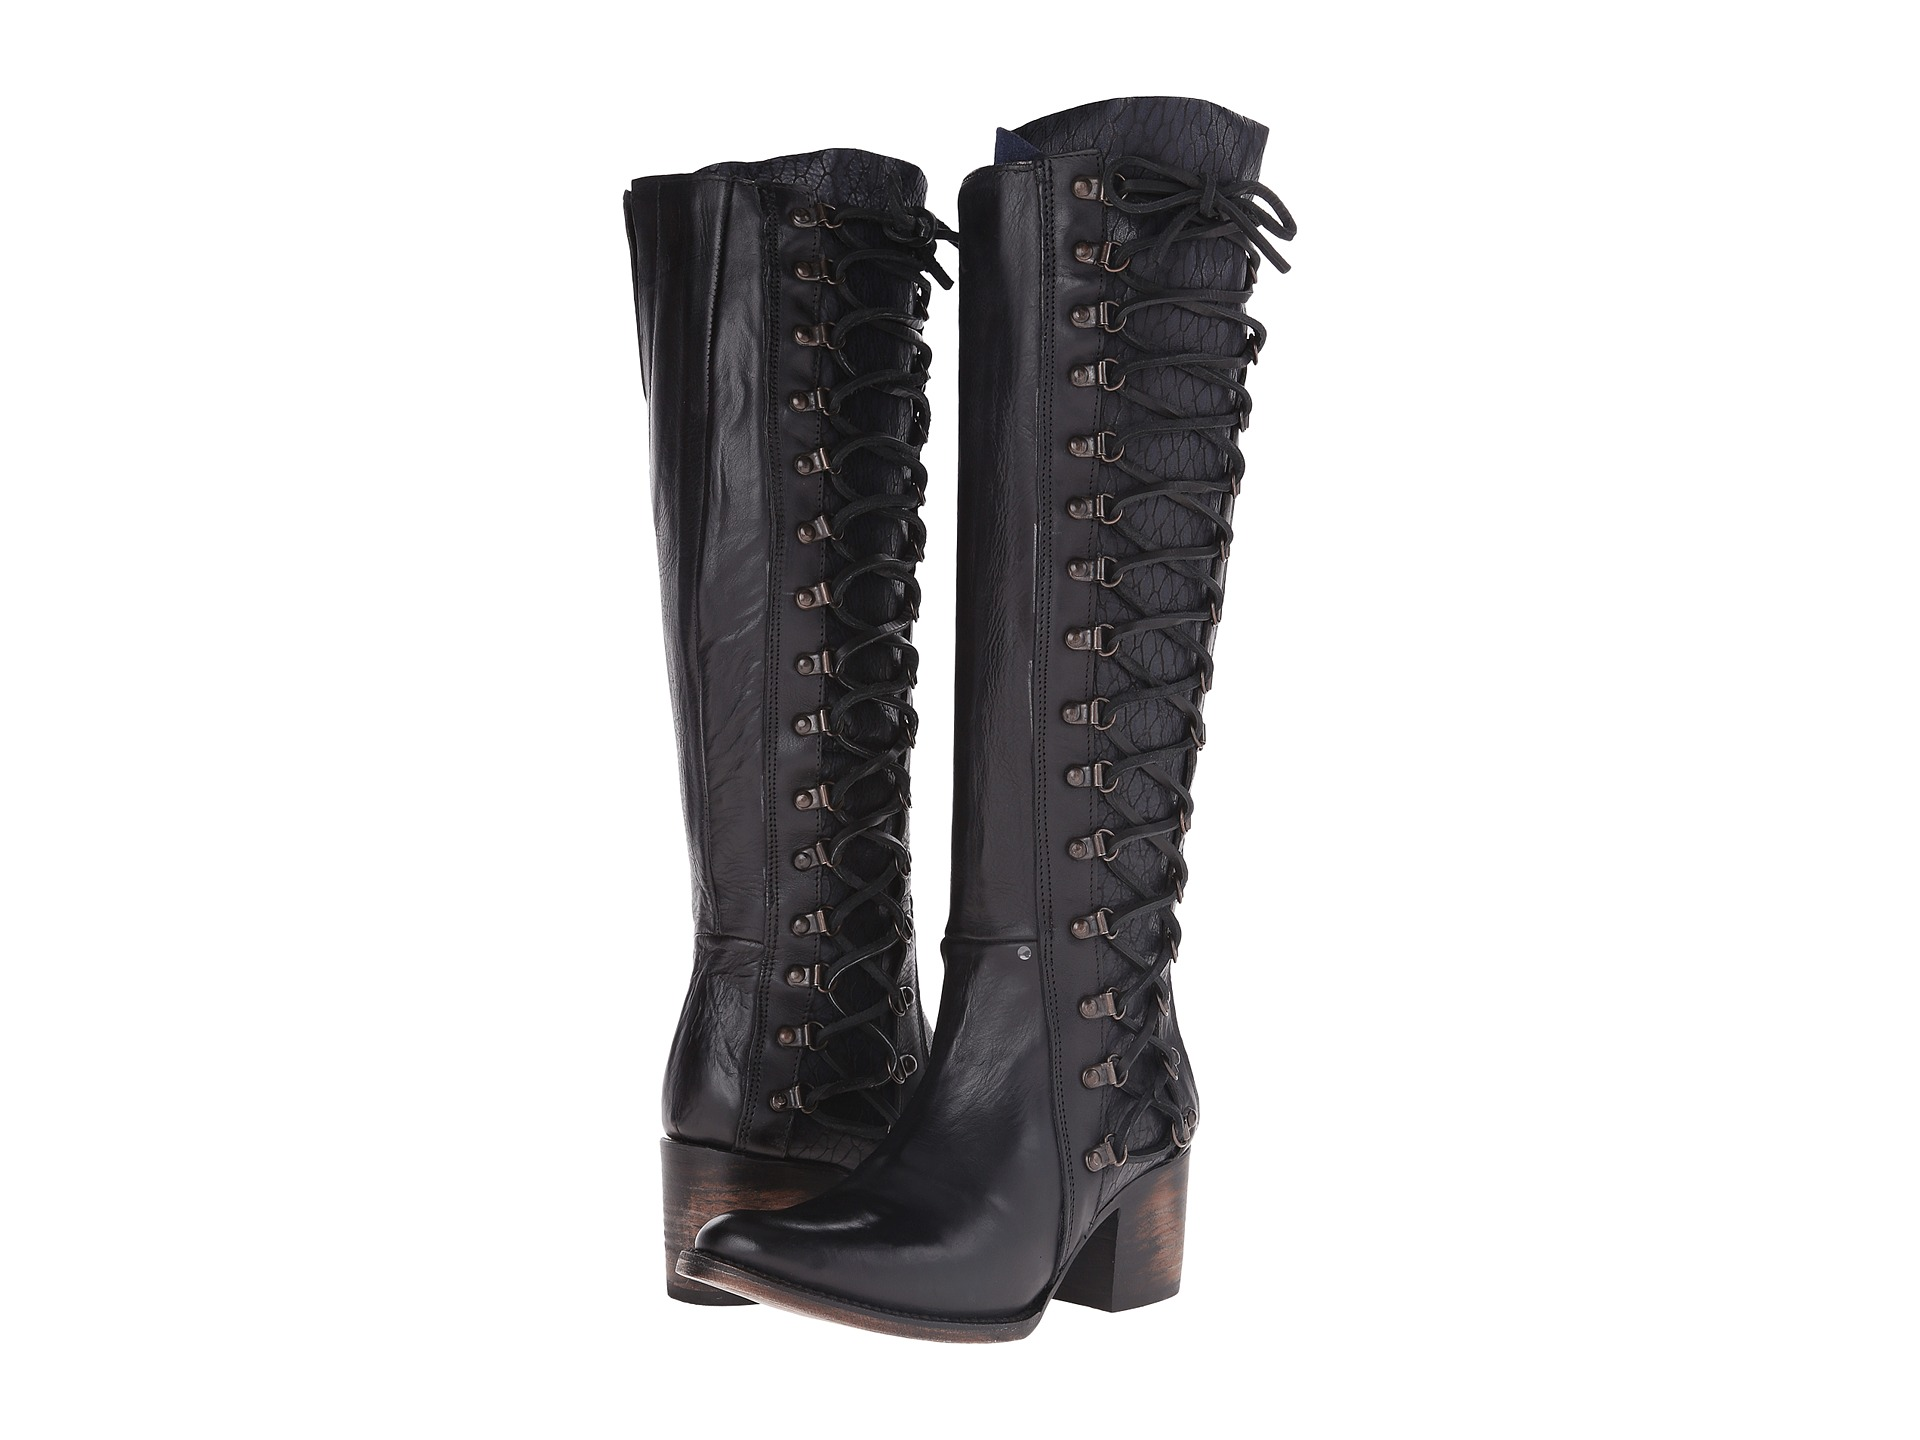 Thigh High Boots - Women&39s Boots | Free Shipping at Zappos